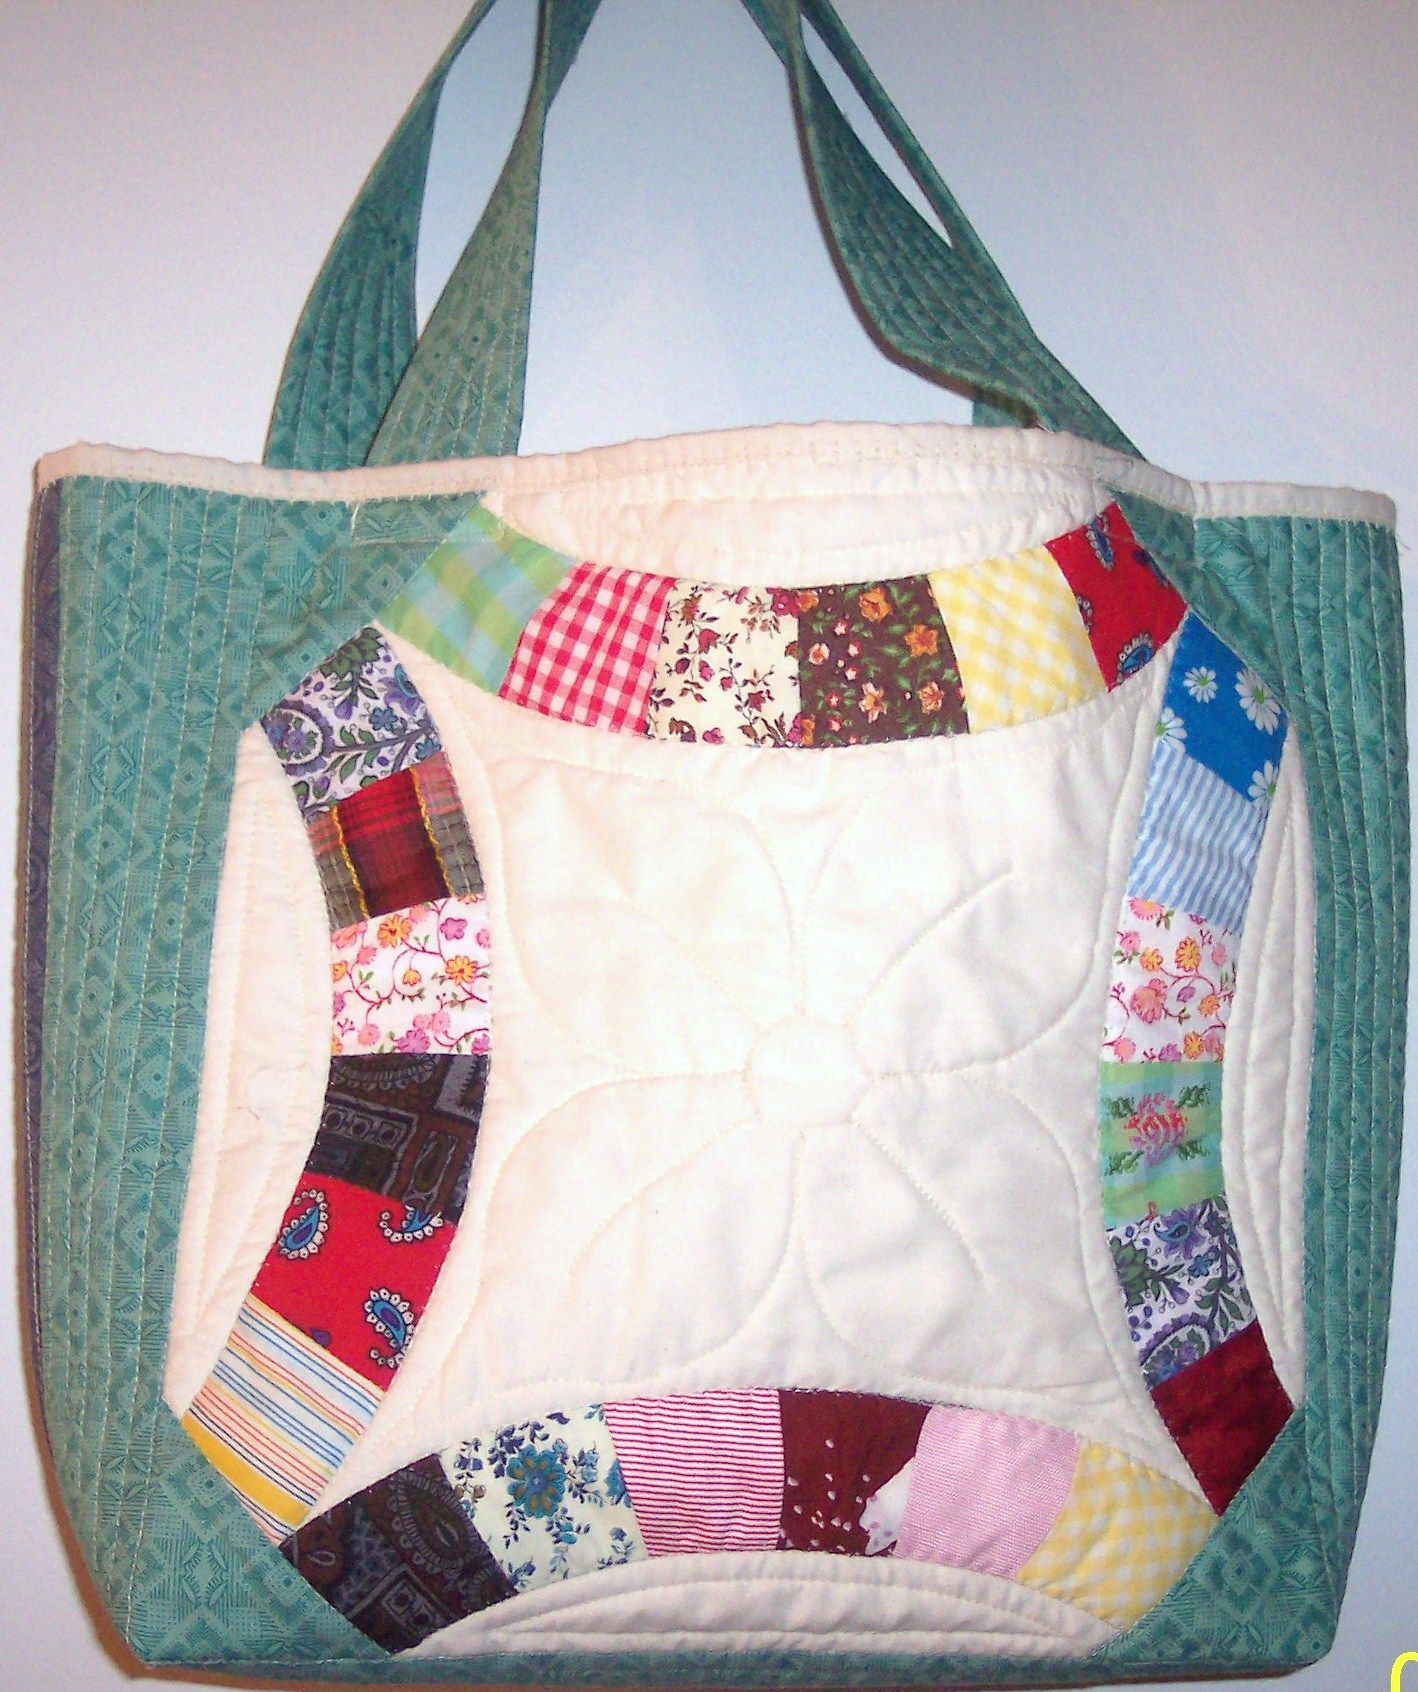 Scrap quilt double wedding ring tote bag Made by Lee McCoy My